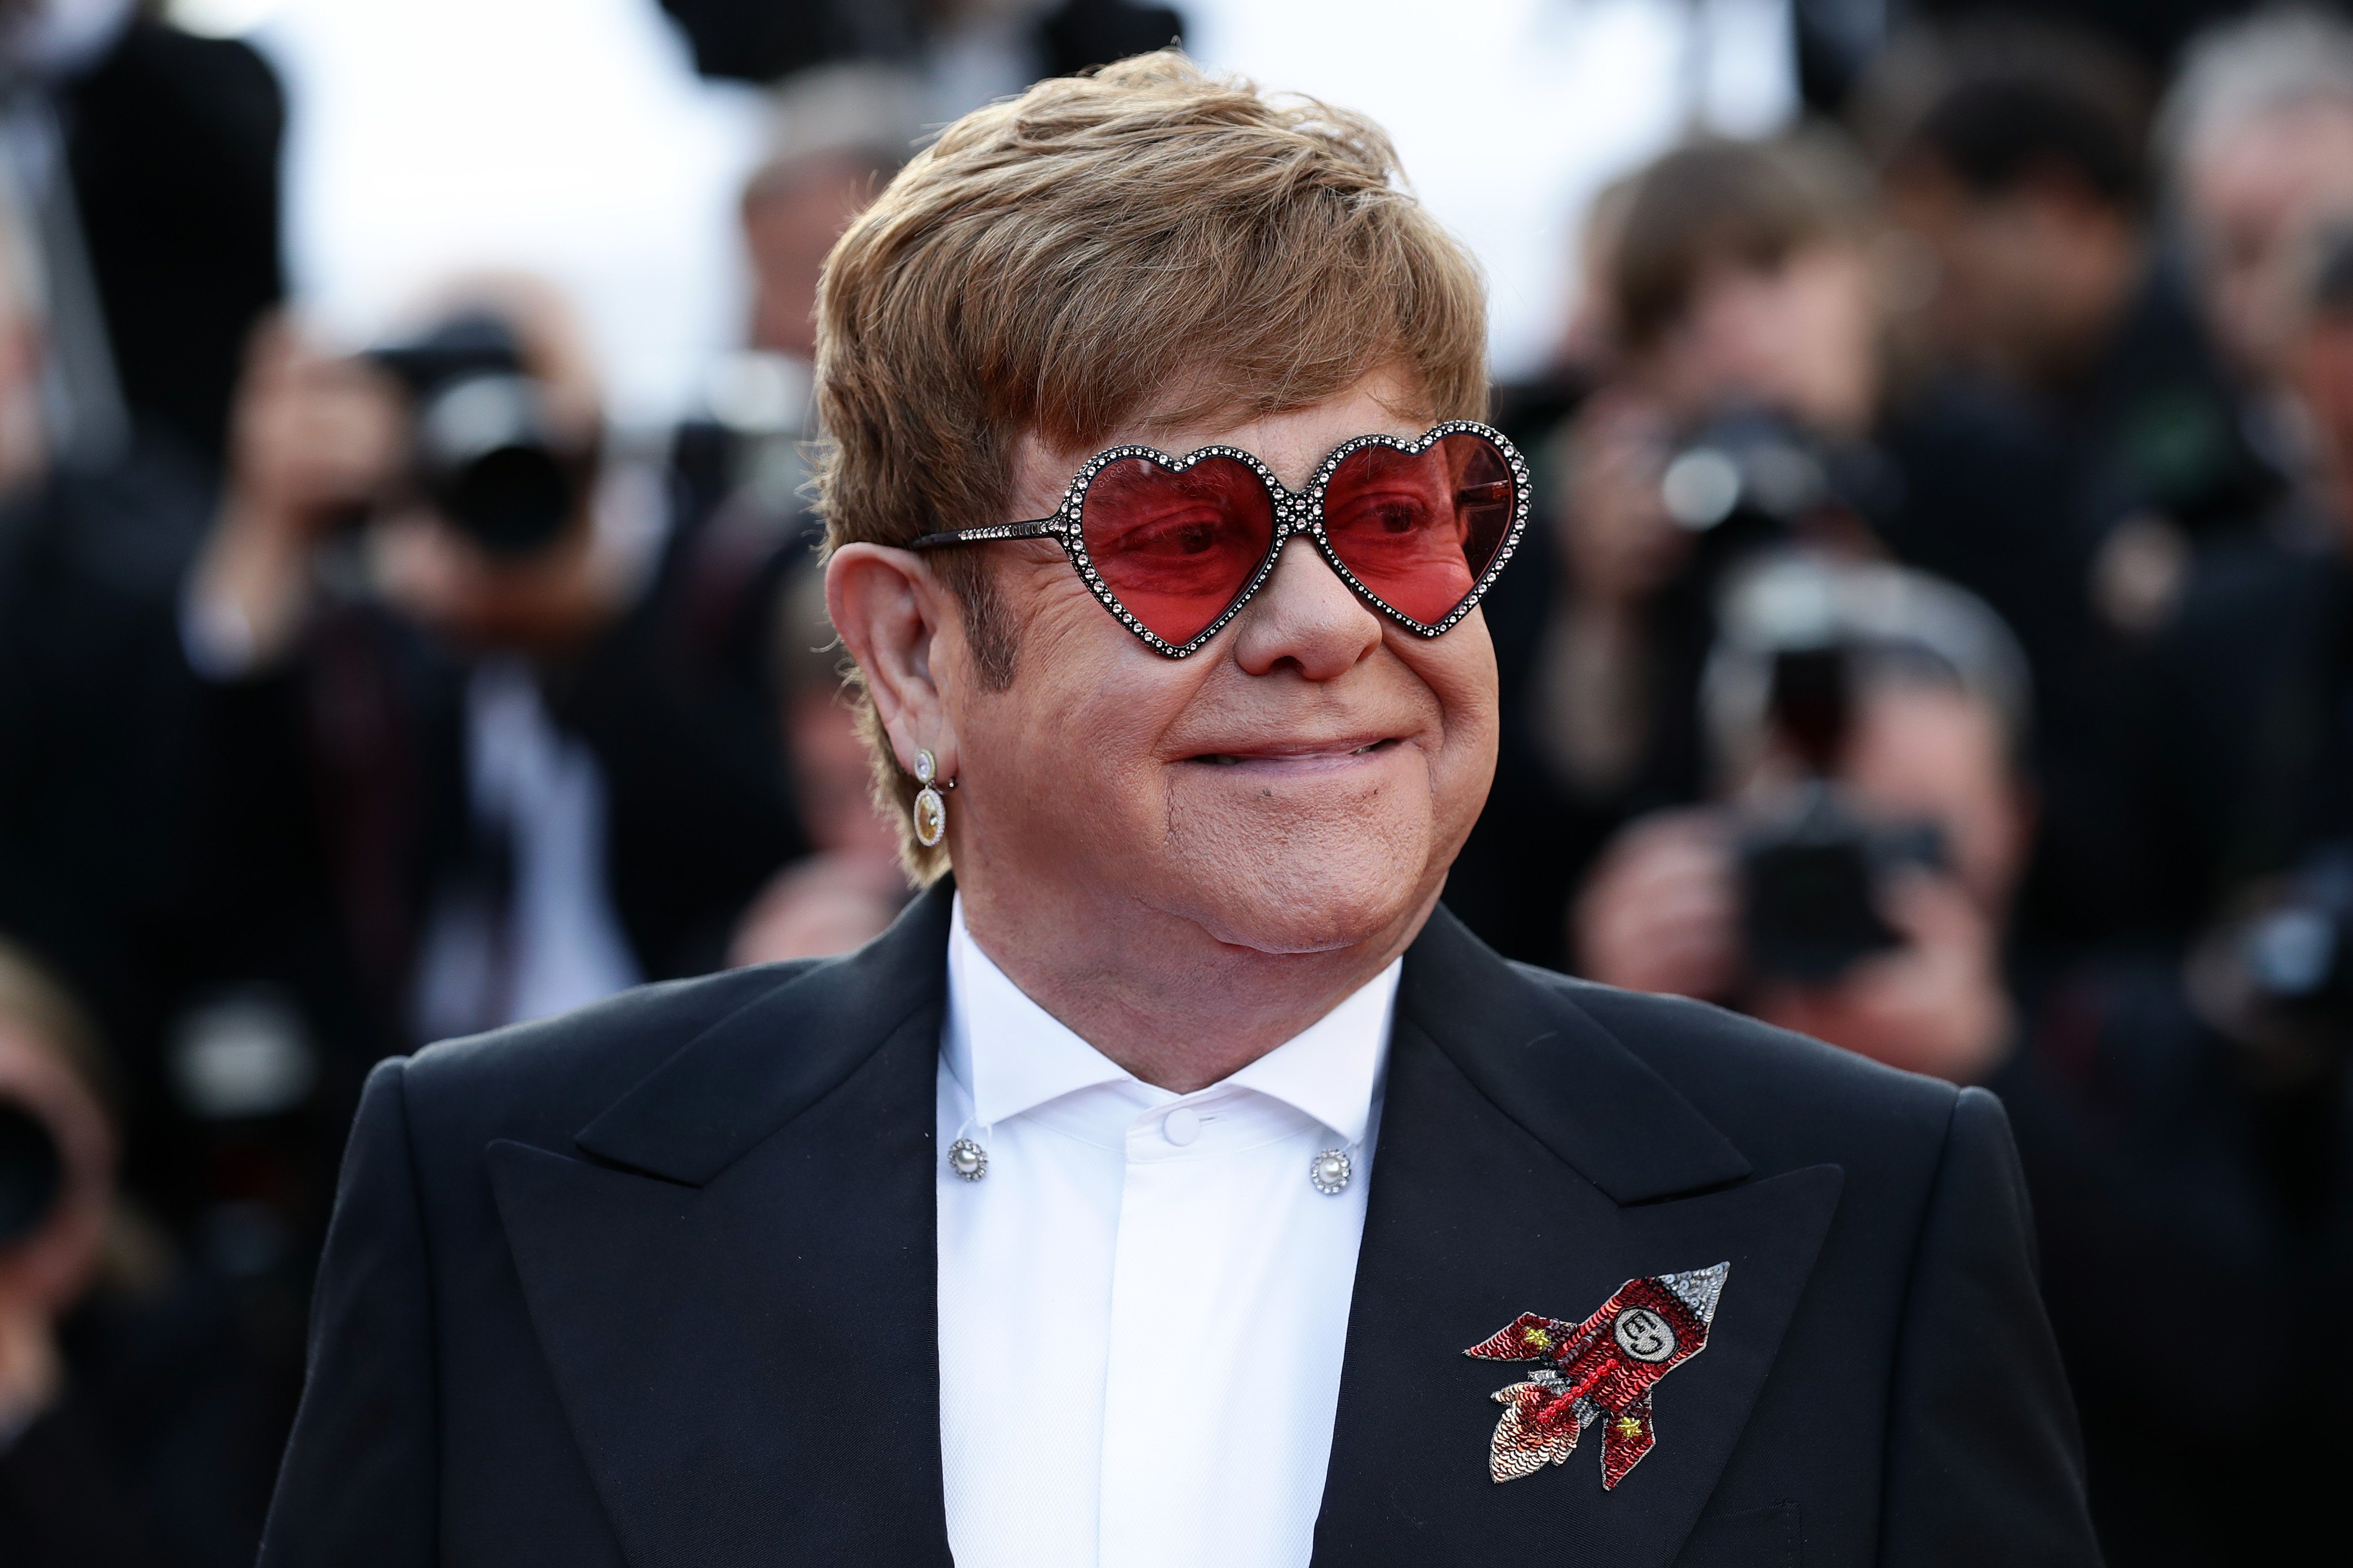 """Sir Elton John at the screening of """"Rocketman"""" during the 72nd annual Cannes Film Festival on May 16, 2019 